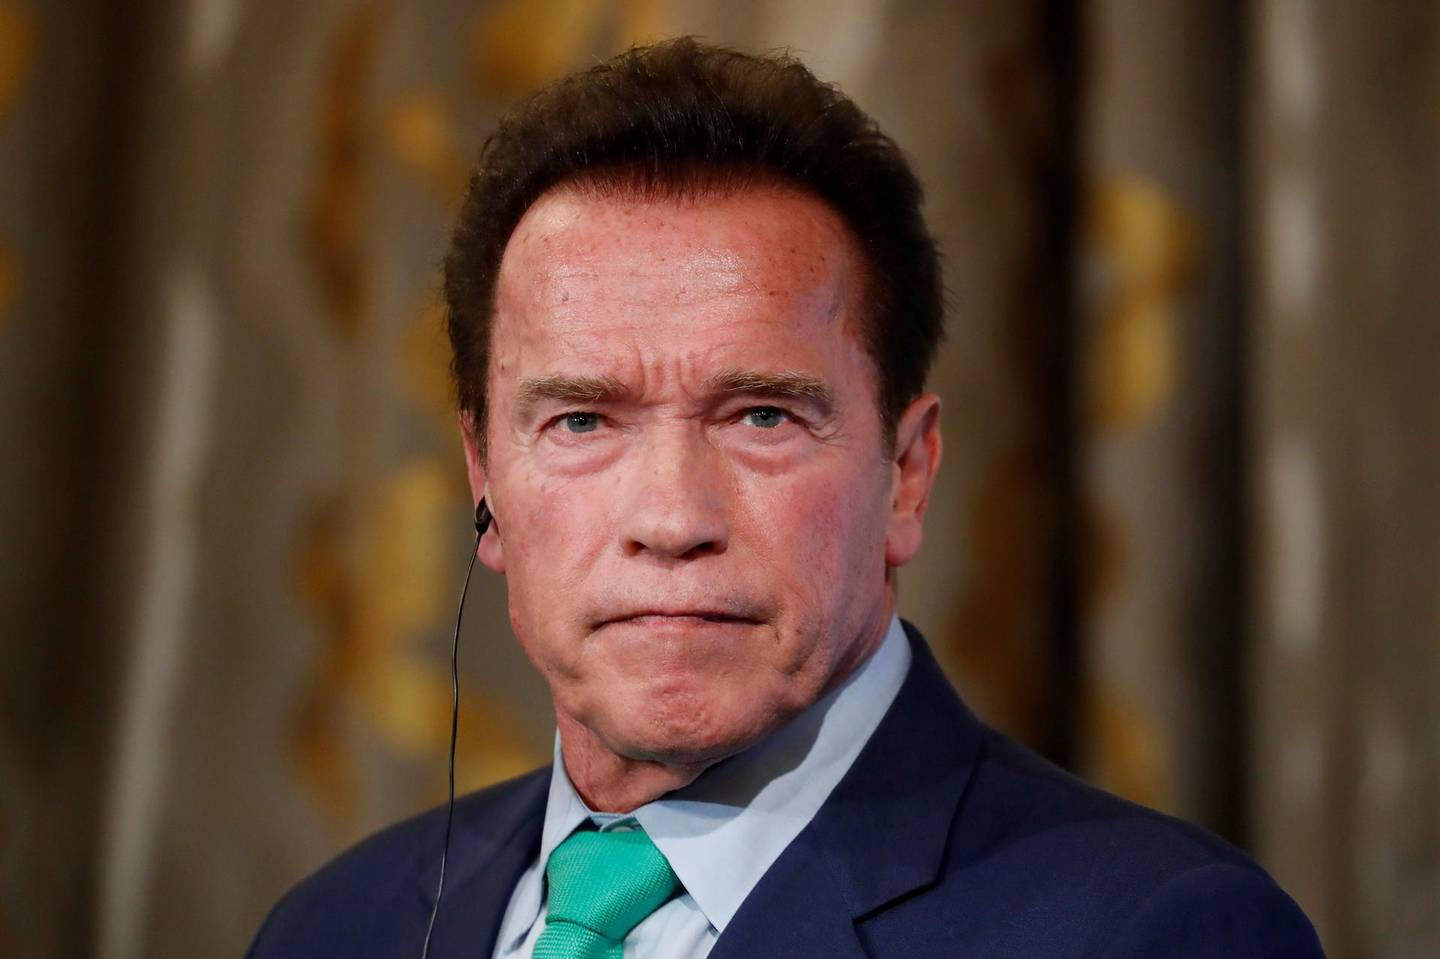 FILE PHOTO - R20 Founder and former California state governor Arnold Schwarzenegger attends a news conference ahead of the One Planet Summit in Paris, France, December 11, 2017. REUTERS/Gonzalo Fuentes/File Photo